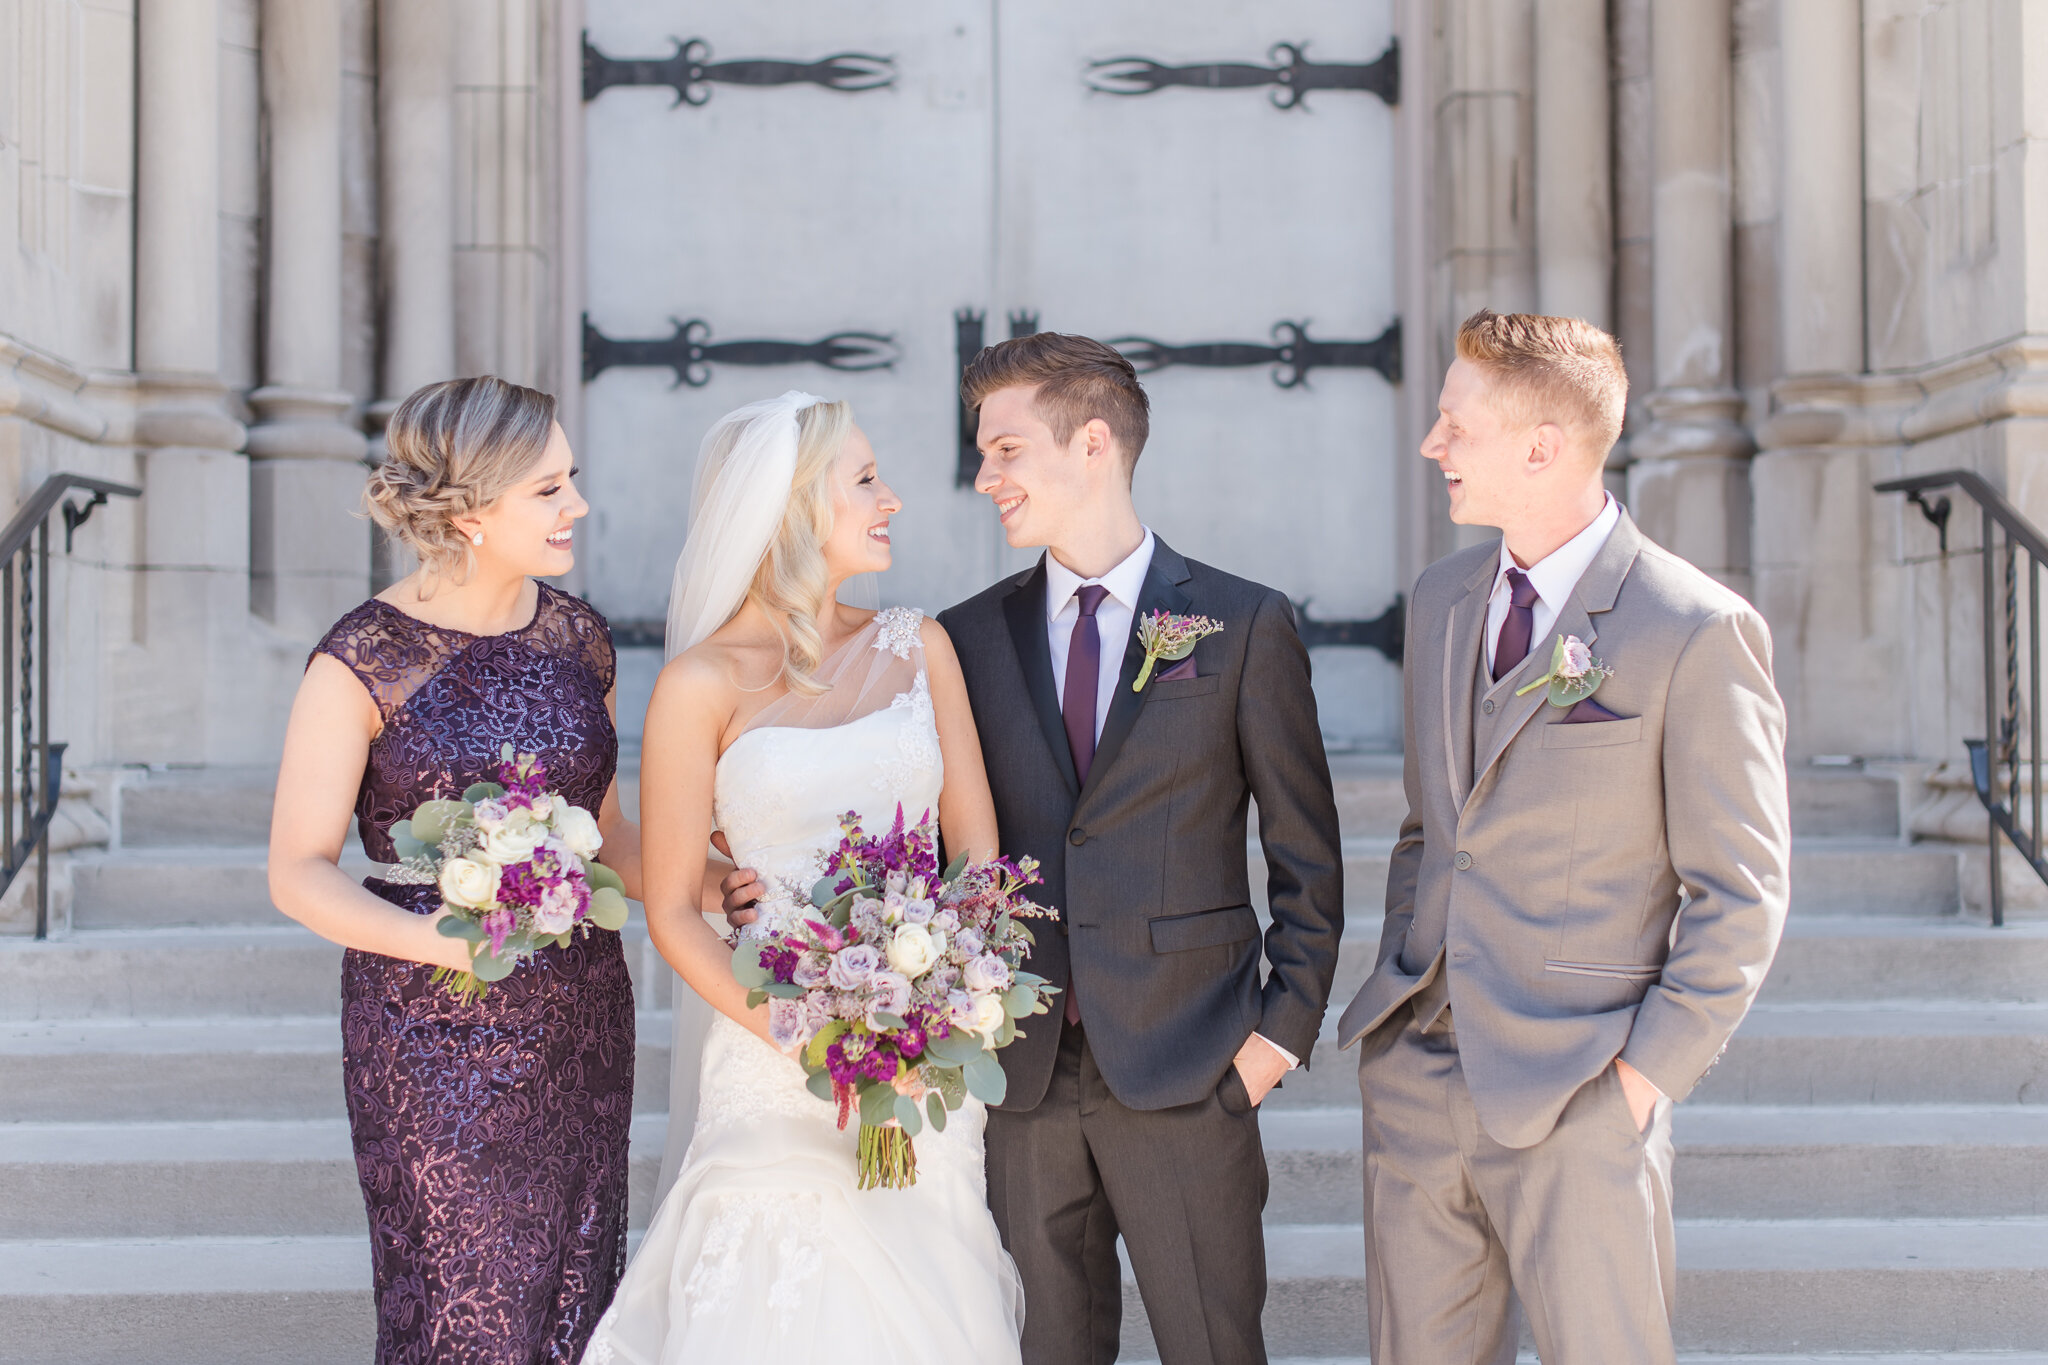 Downtown Indianapolis Wedding at Cyrus Place6629.jpg